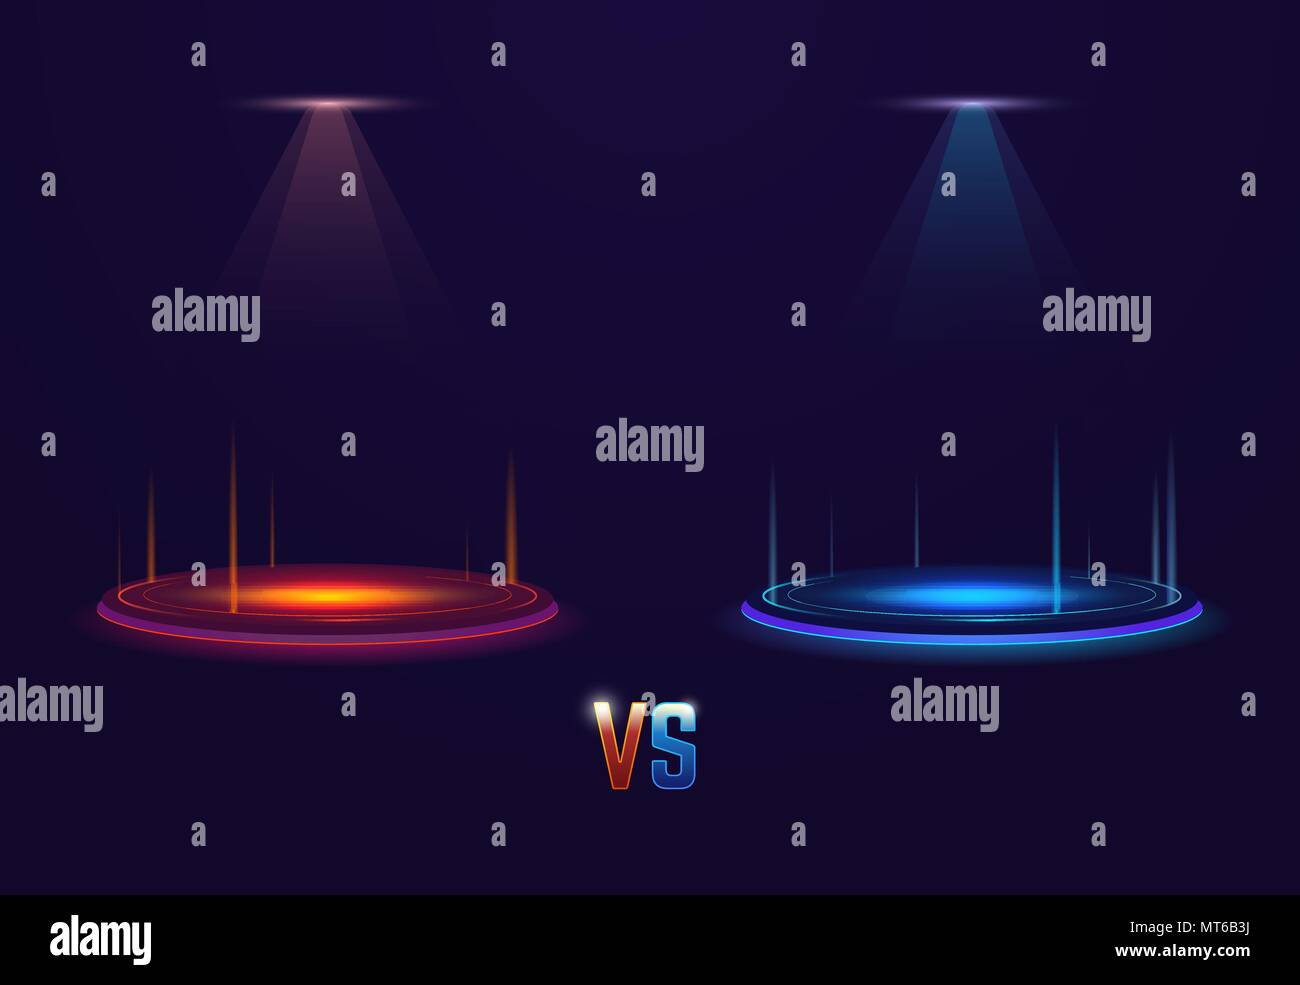 Versus glowing portal - Stock Vector